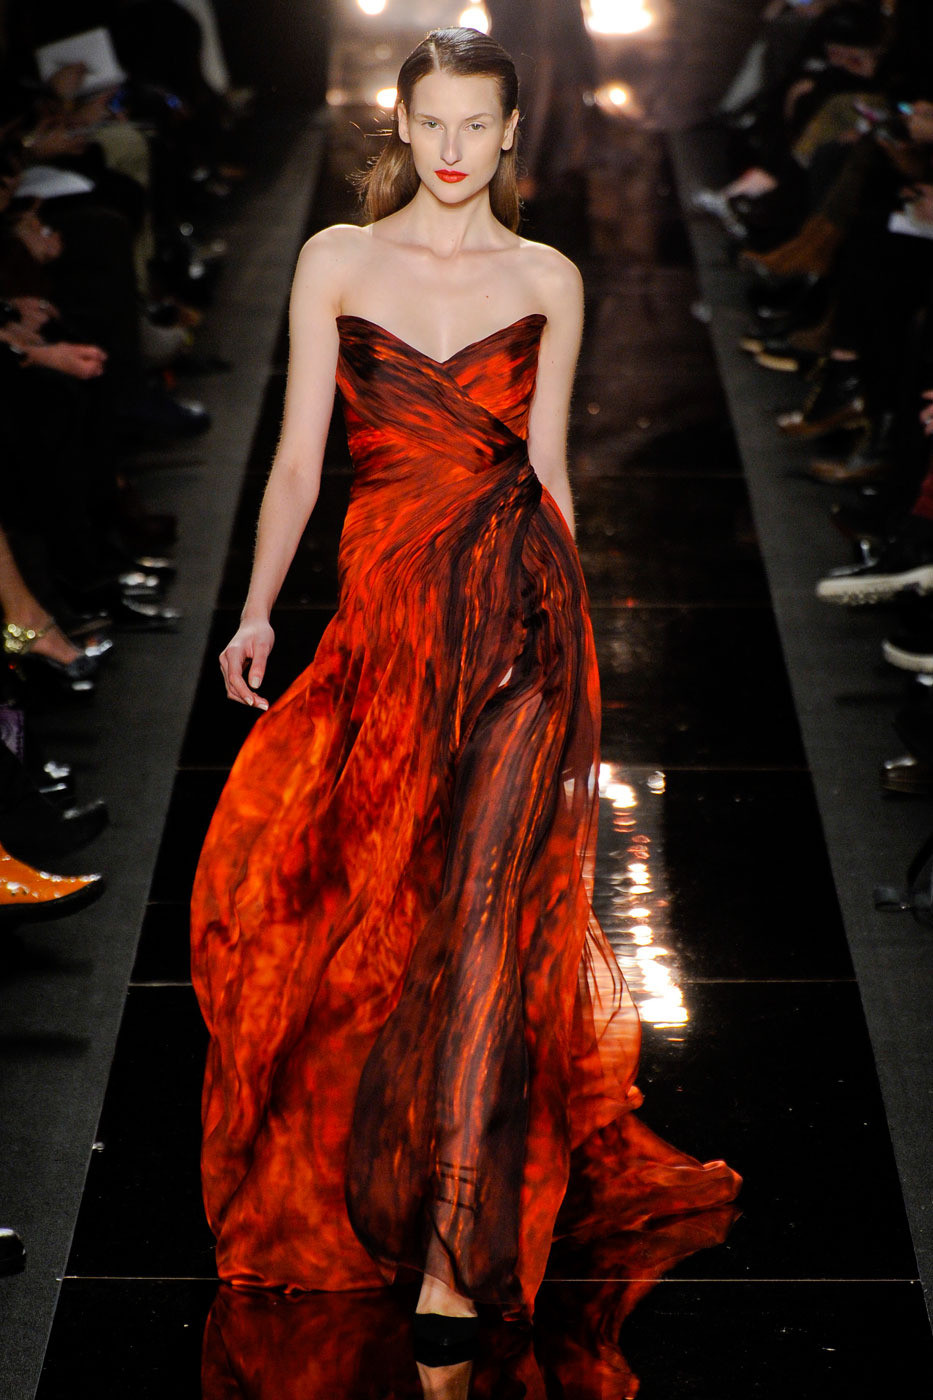 Monique Lhuillier S Fiery Gown The 20 Hottest Looks From